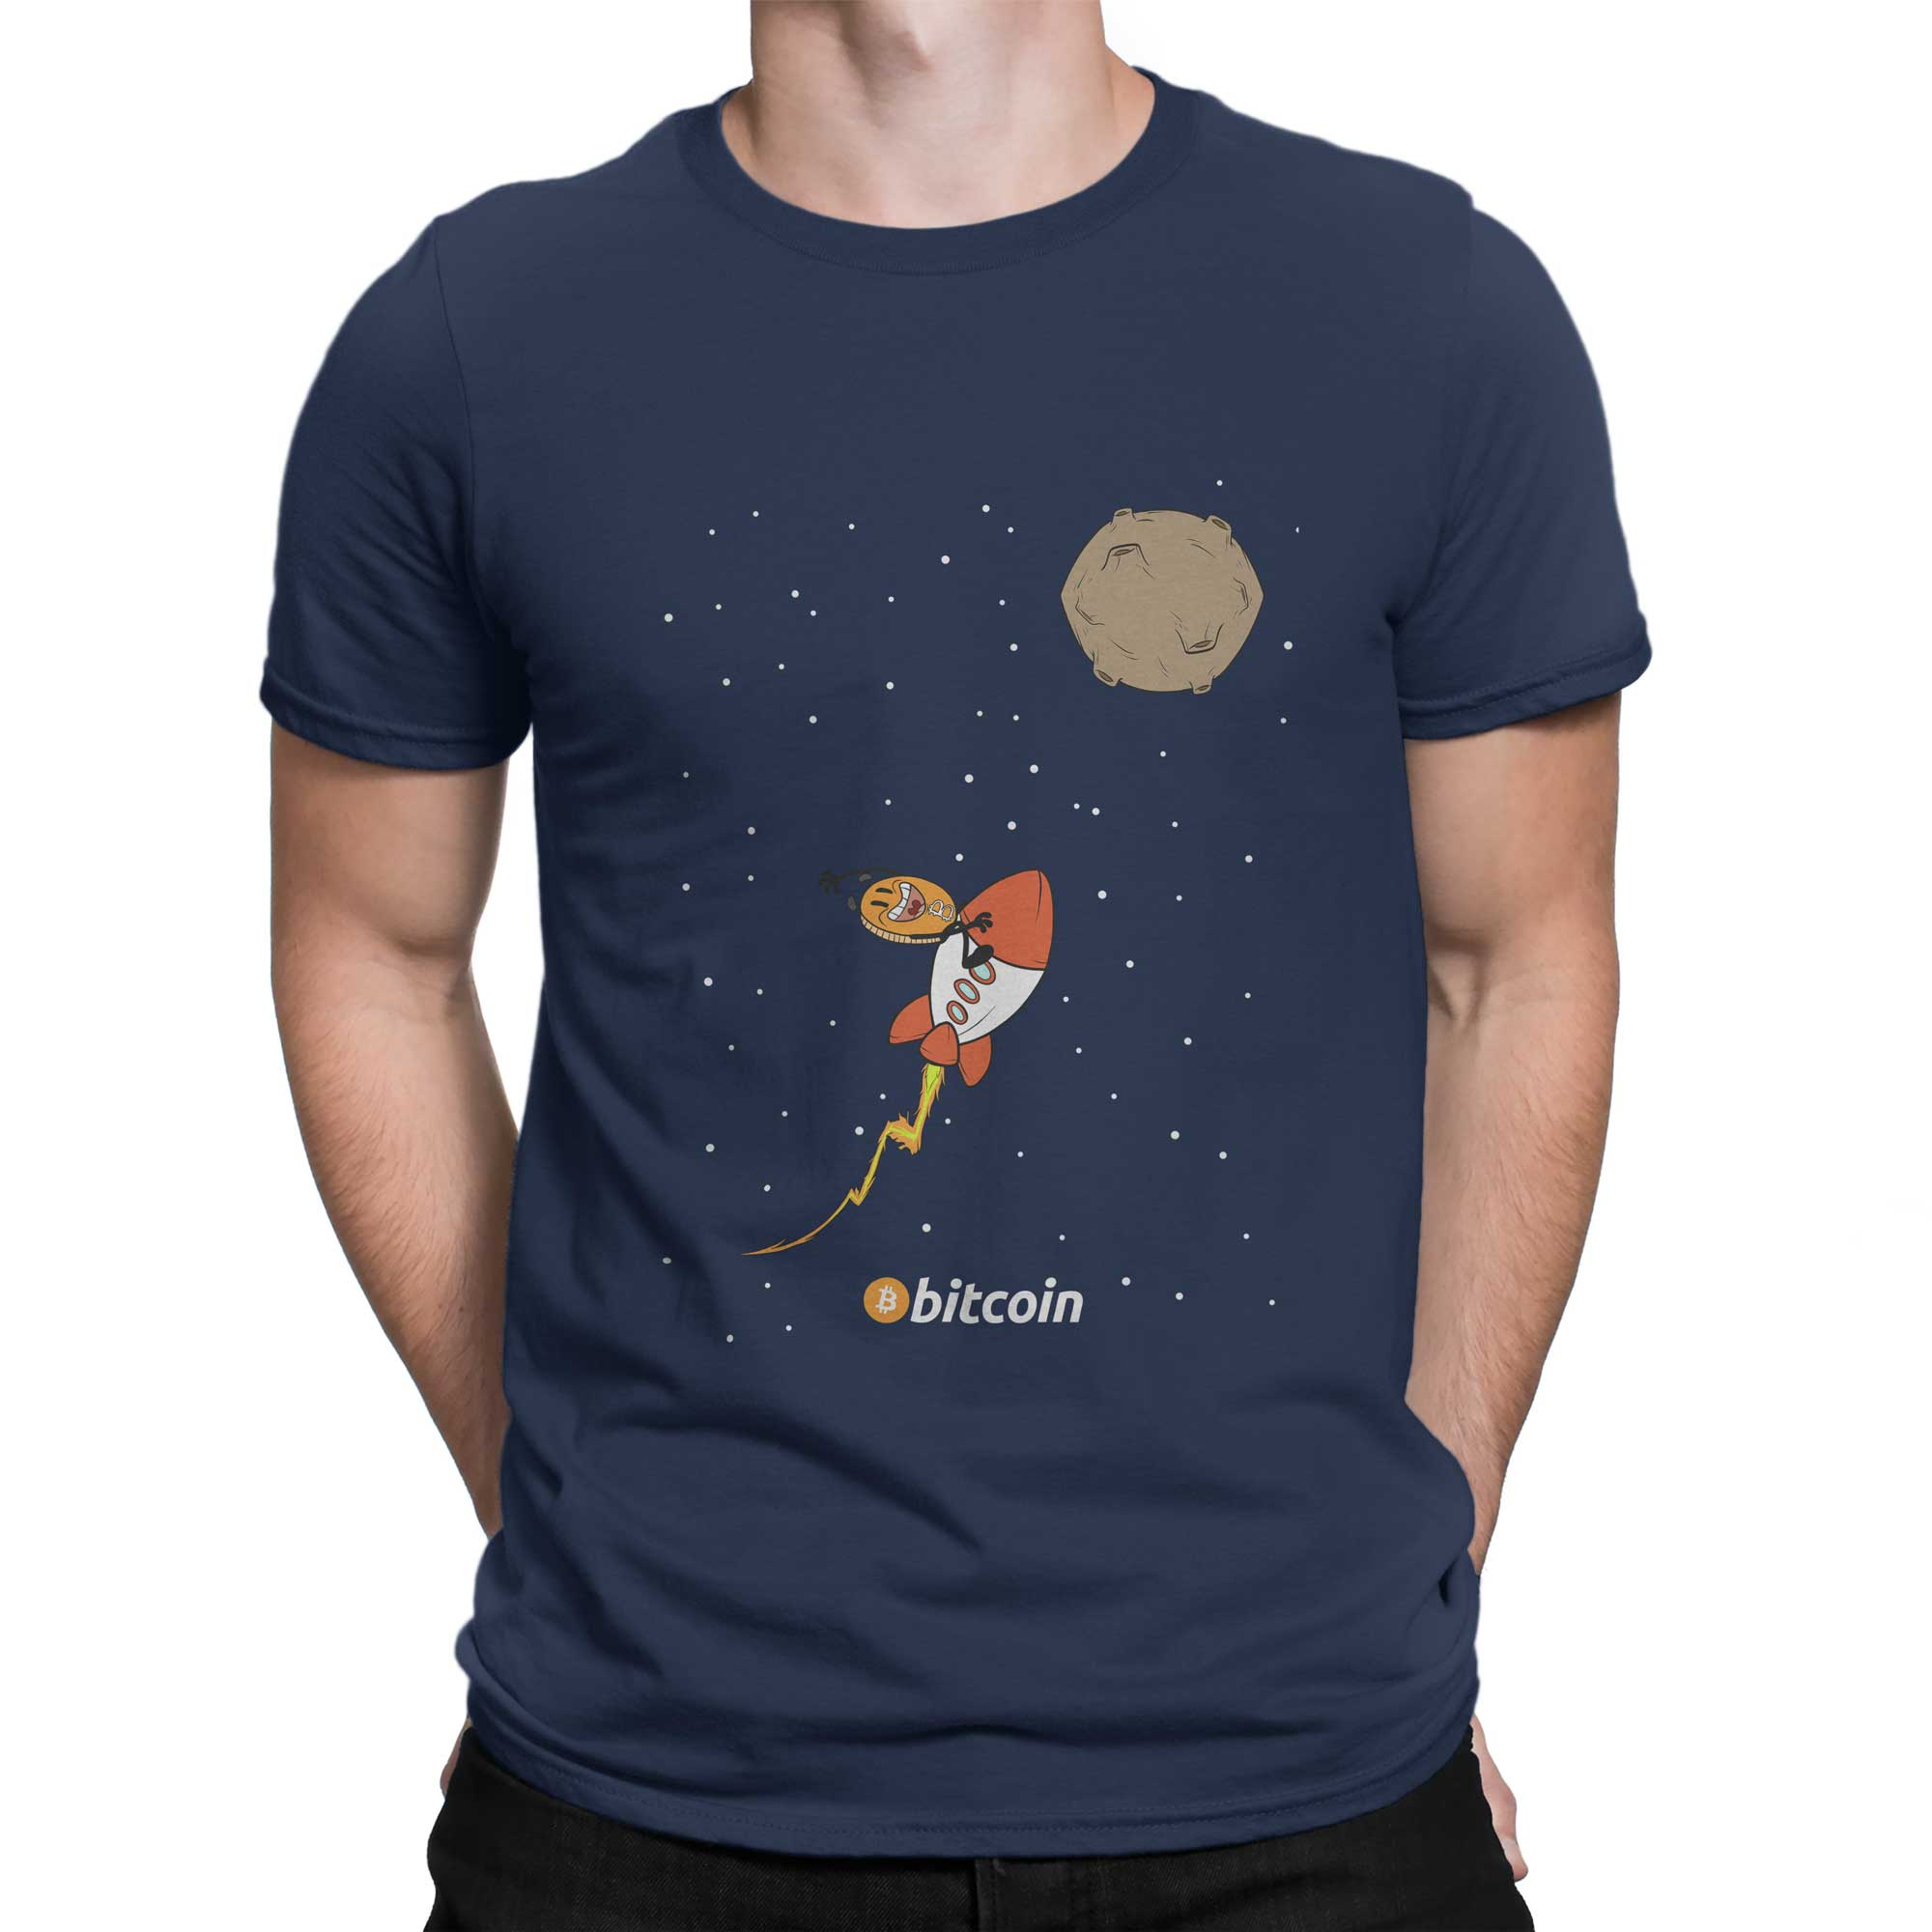 To The Moon Bitcoin Shirts